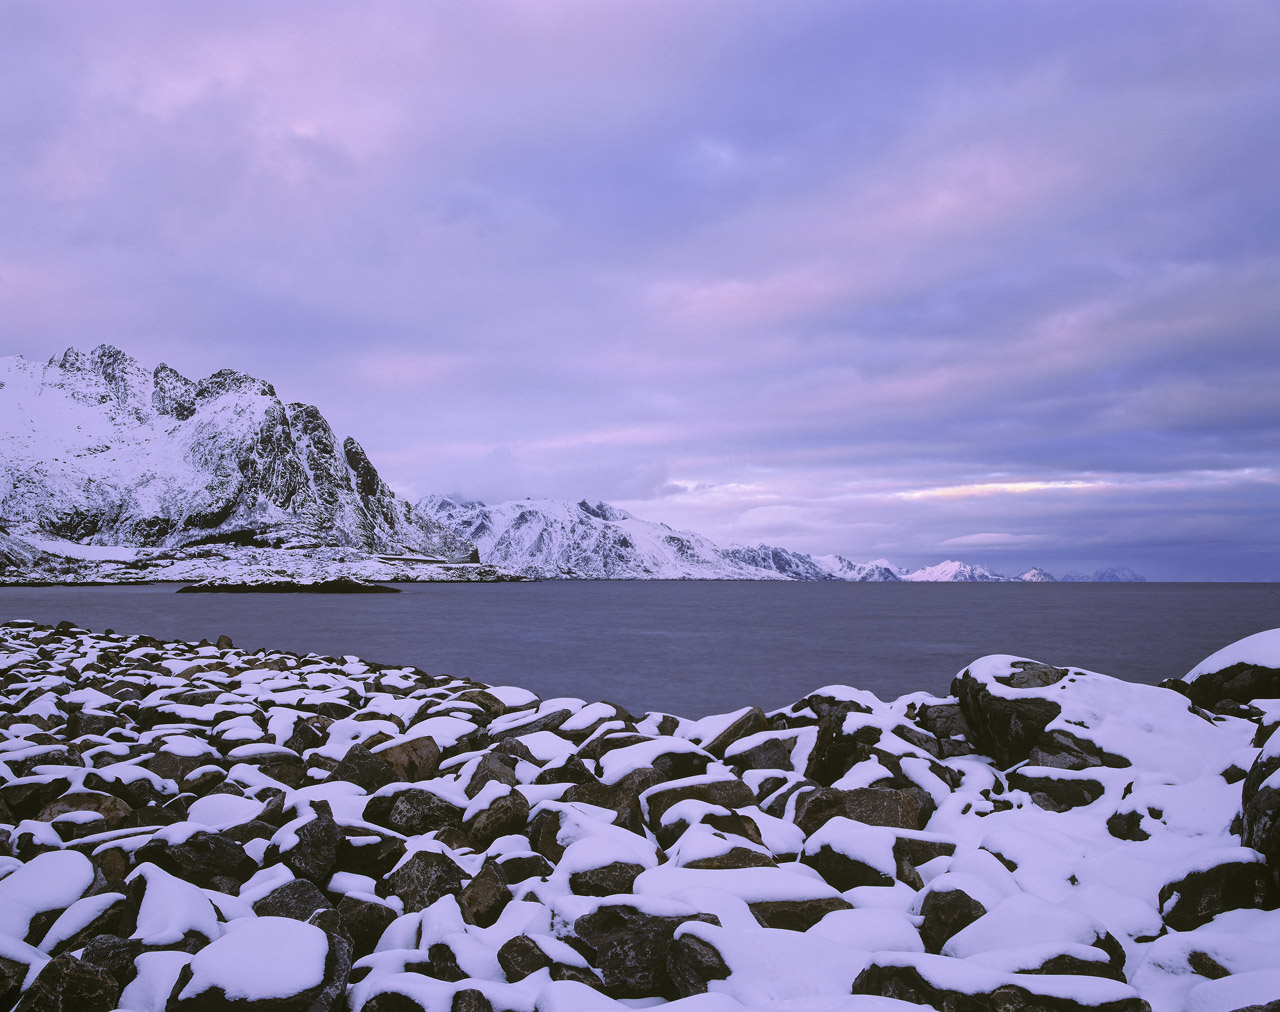 Snowfall Hamnoy, Hamnoy, Lofoten, Norway, snow, harbour, memerising, repeating, pattern, rock, veined, rose, clouds , photo